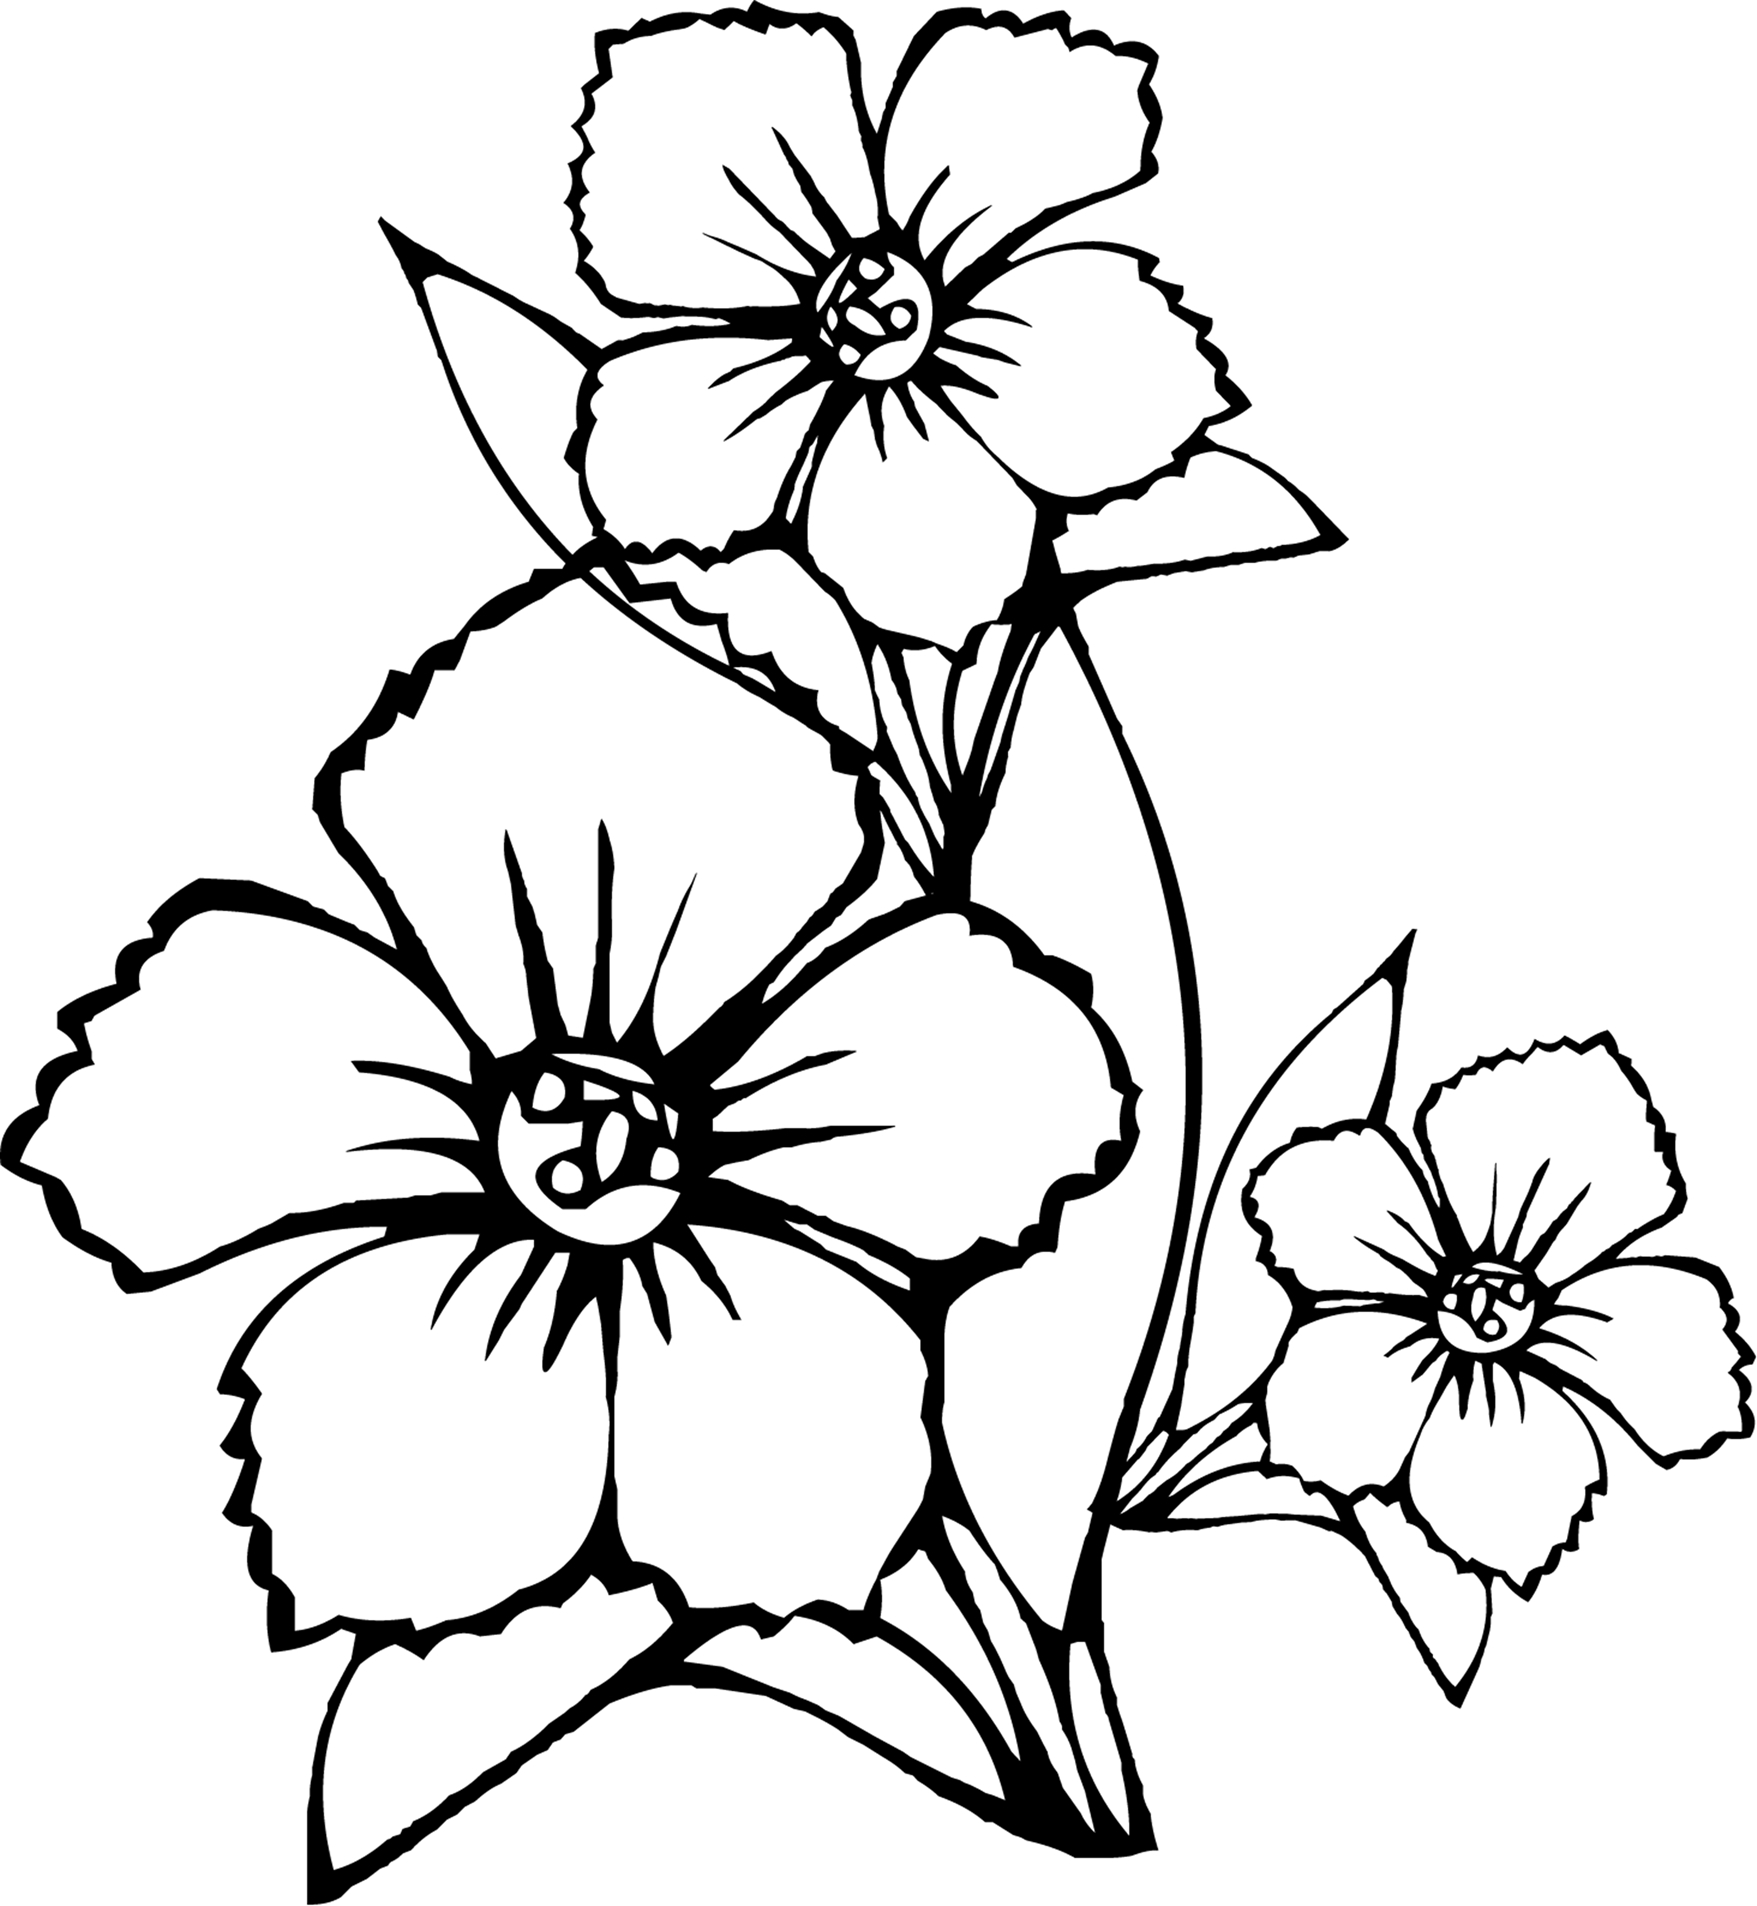 flower coloring pages for kids free printable flower coloring pages for kids best pages coloring flower kids for